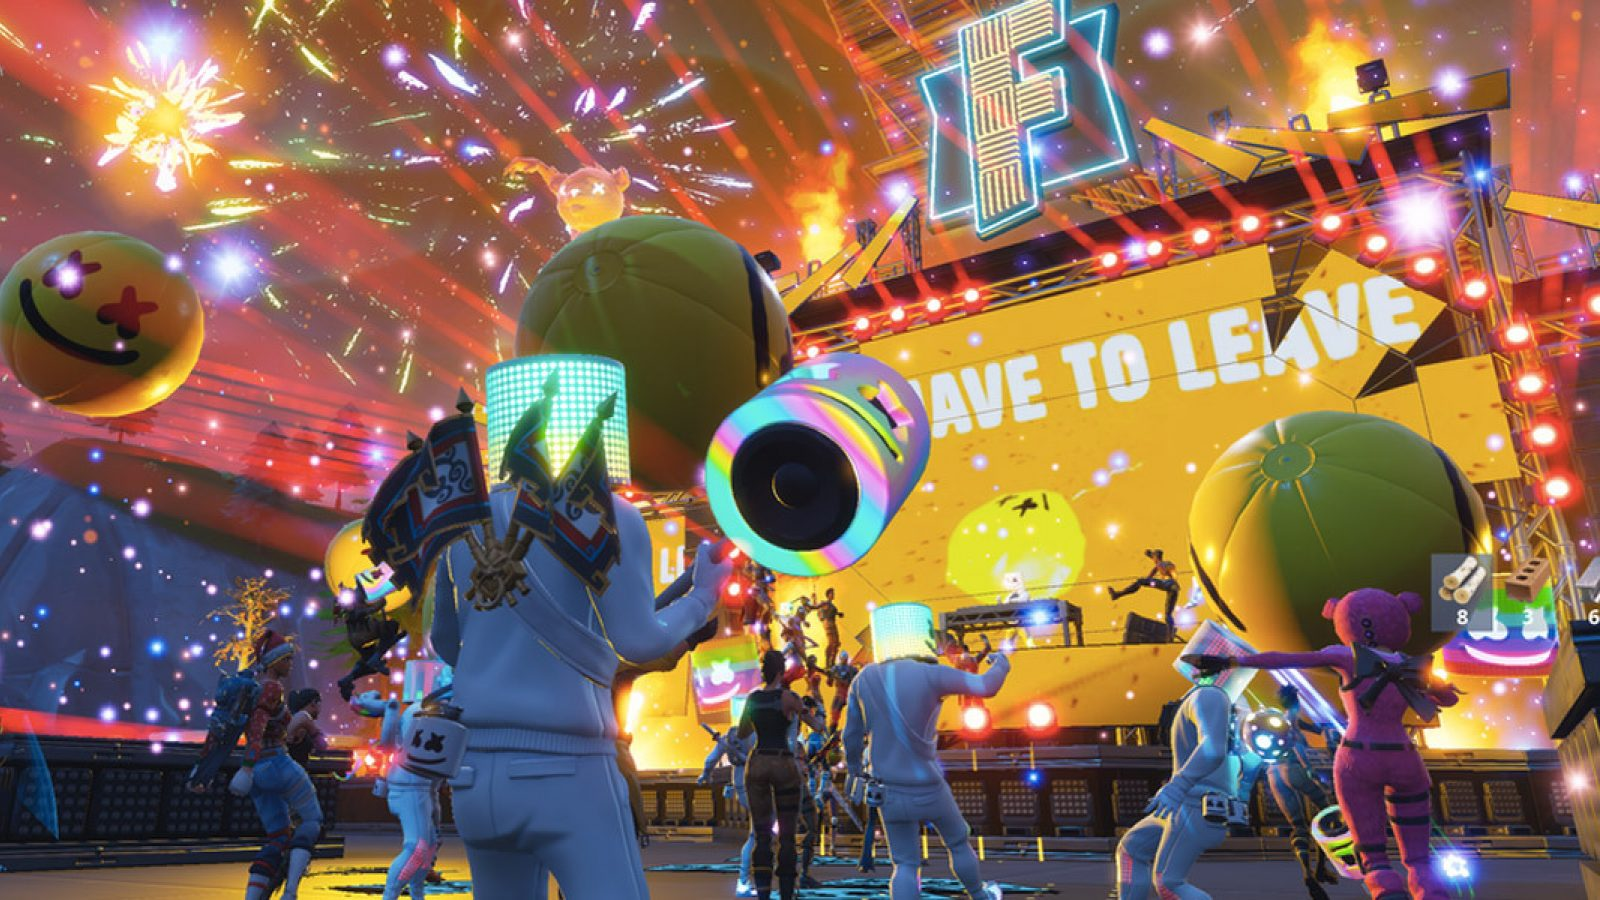 Marshmello Fortnite concert event